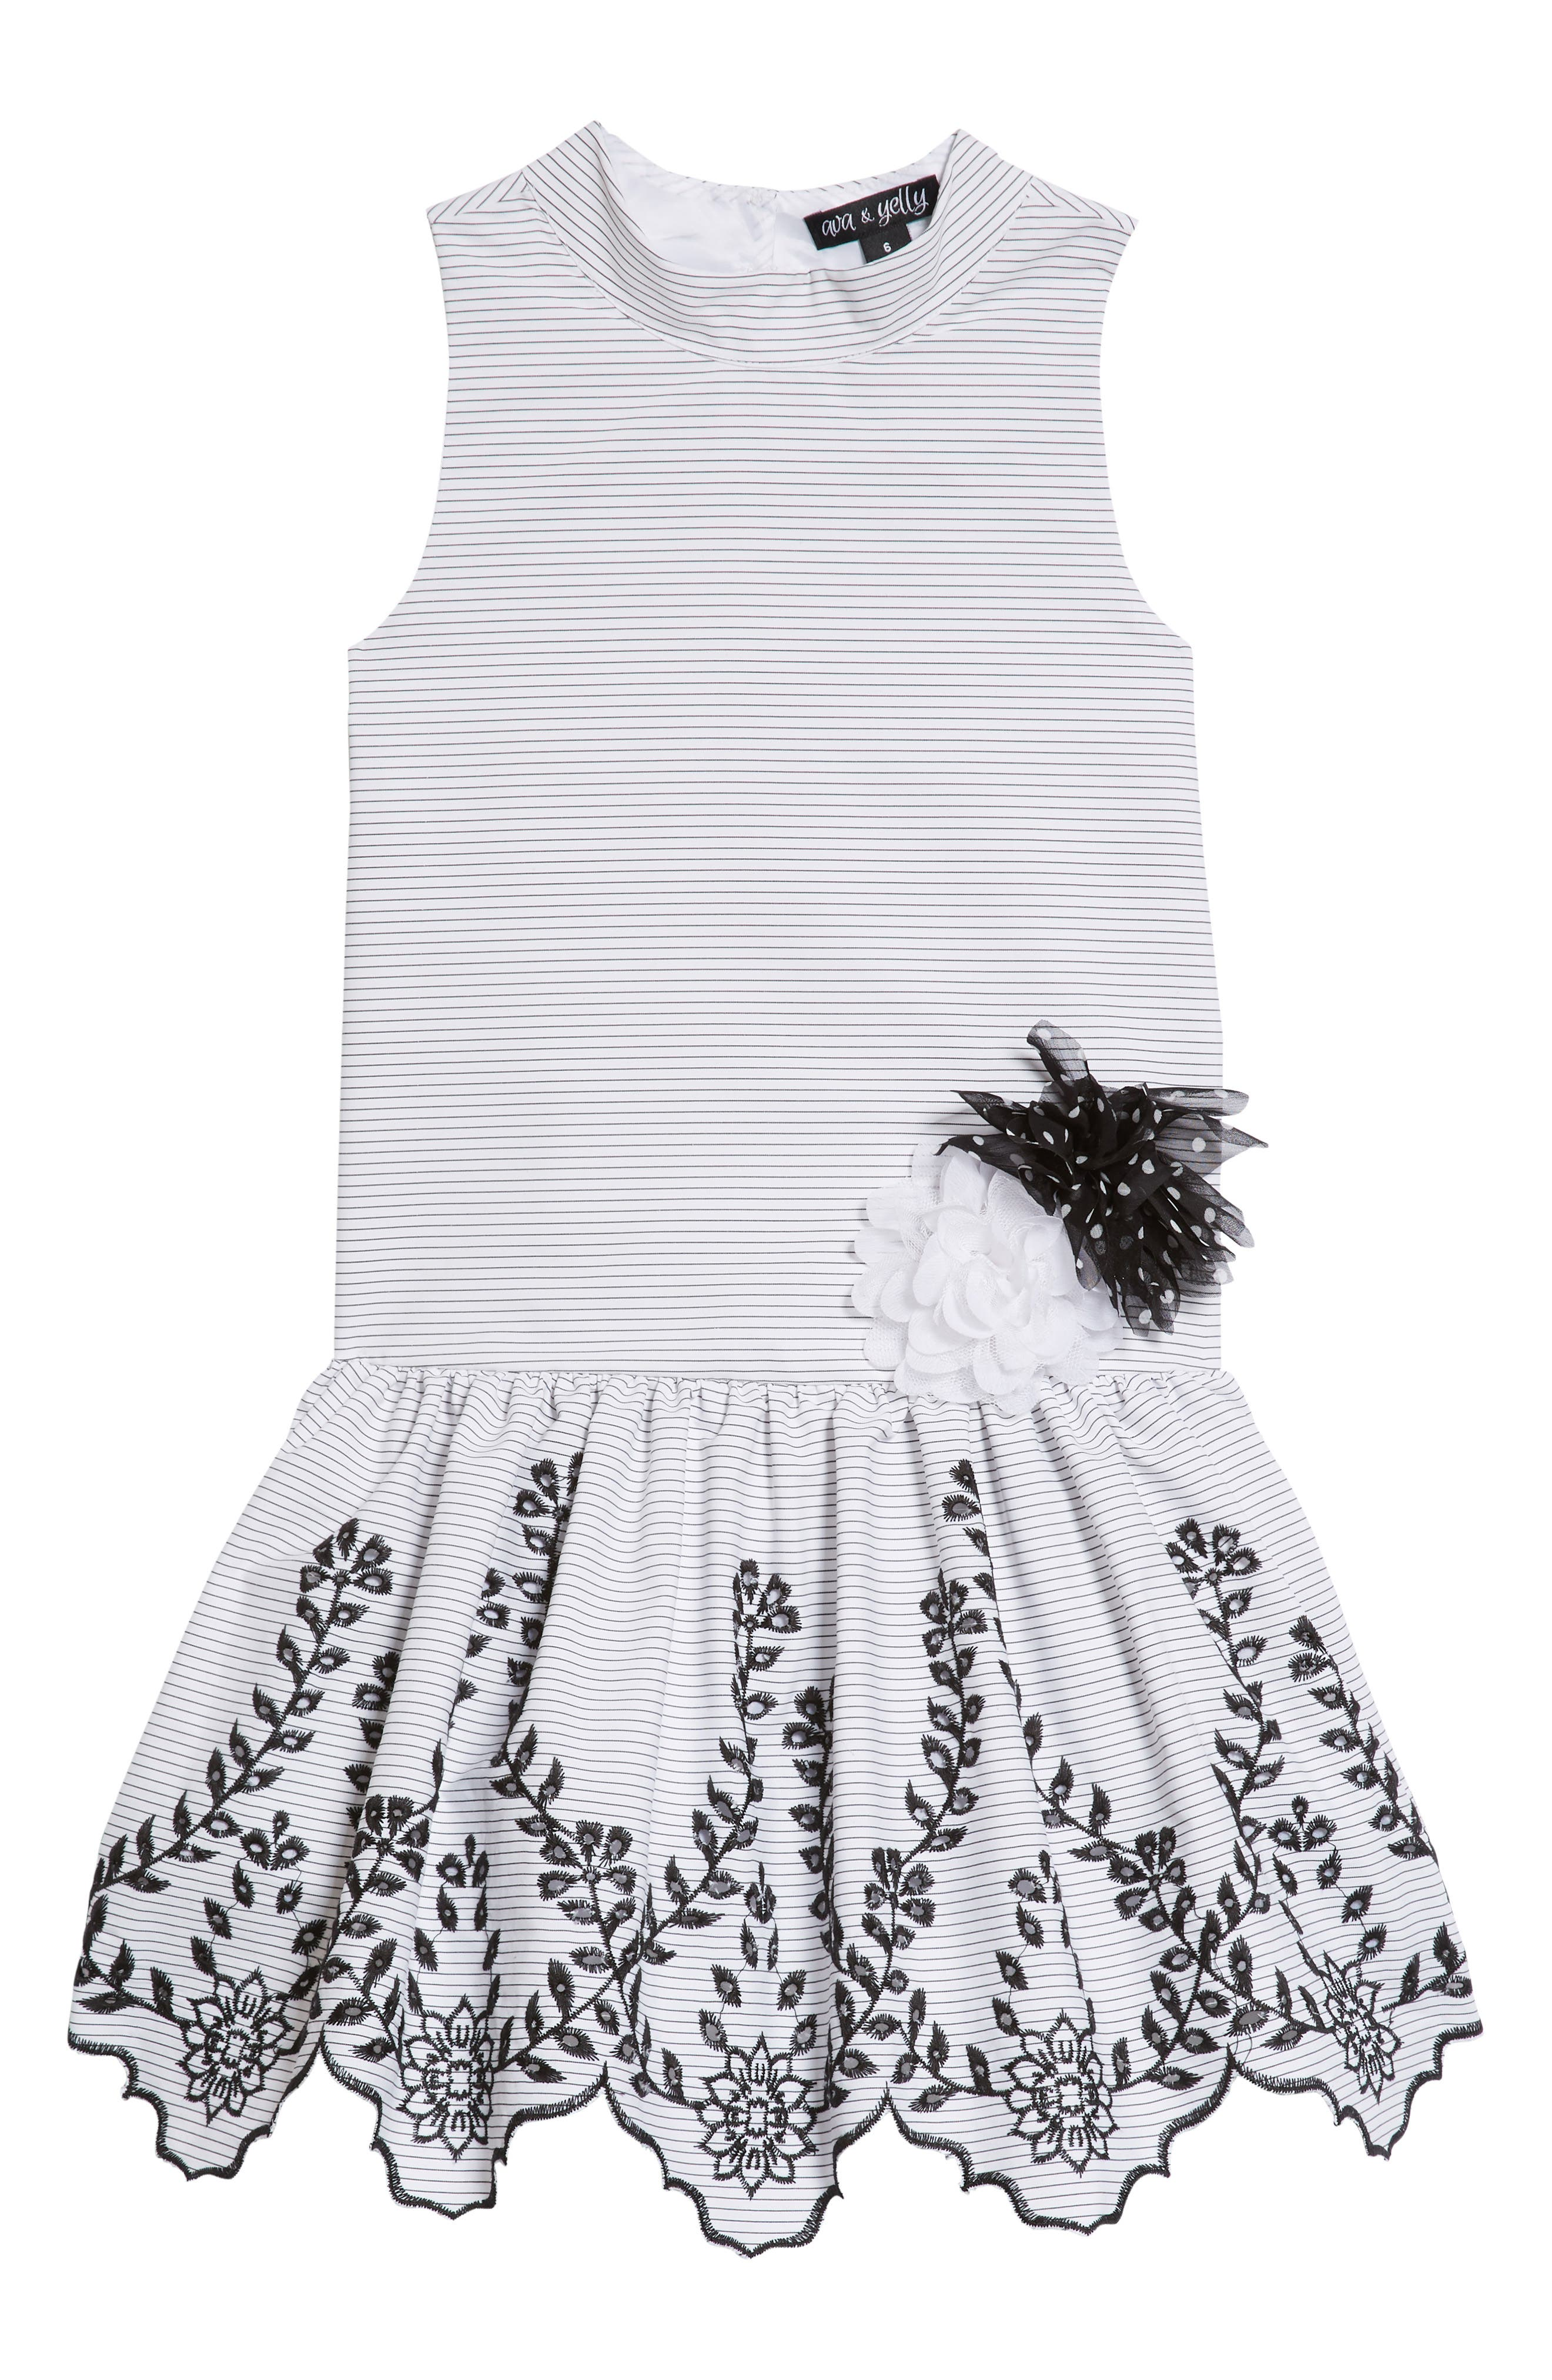 Alternate Image 1 Selected - Ava & Yelly Drop Waist Party Dress (Toddler Girls & Little Girls)